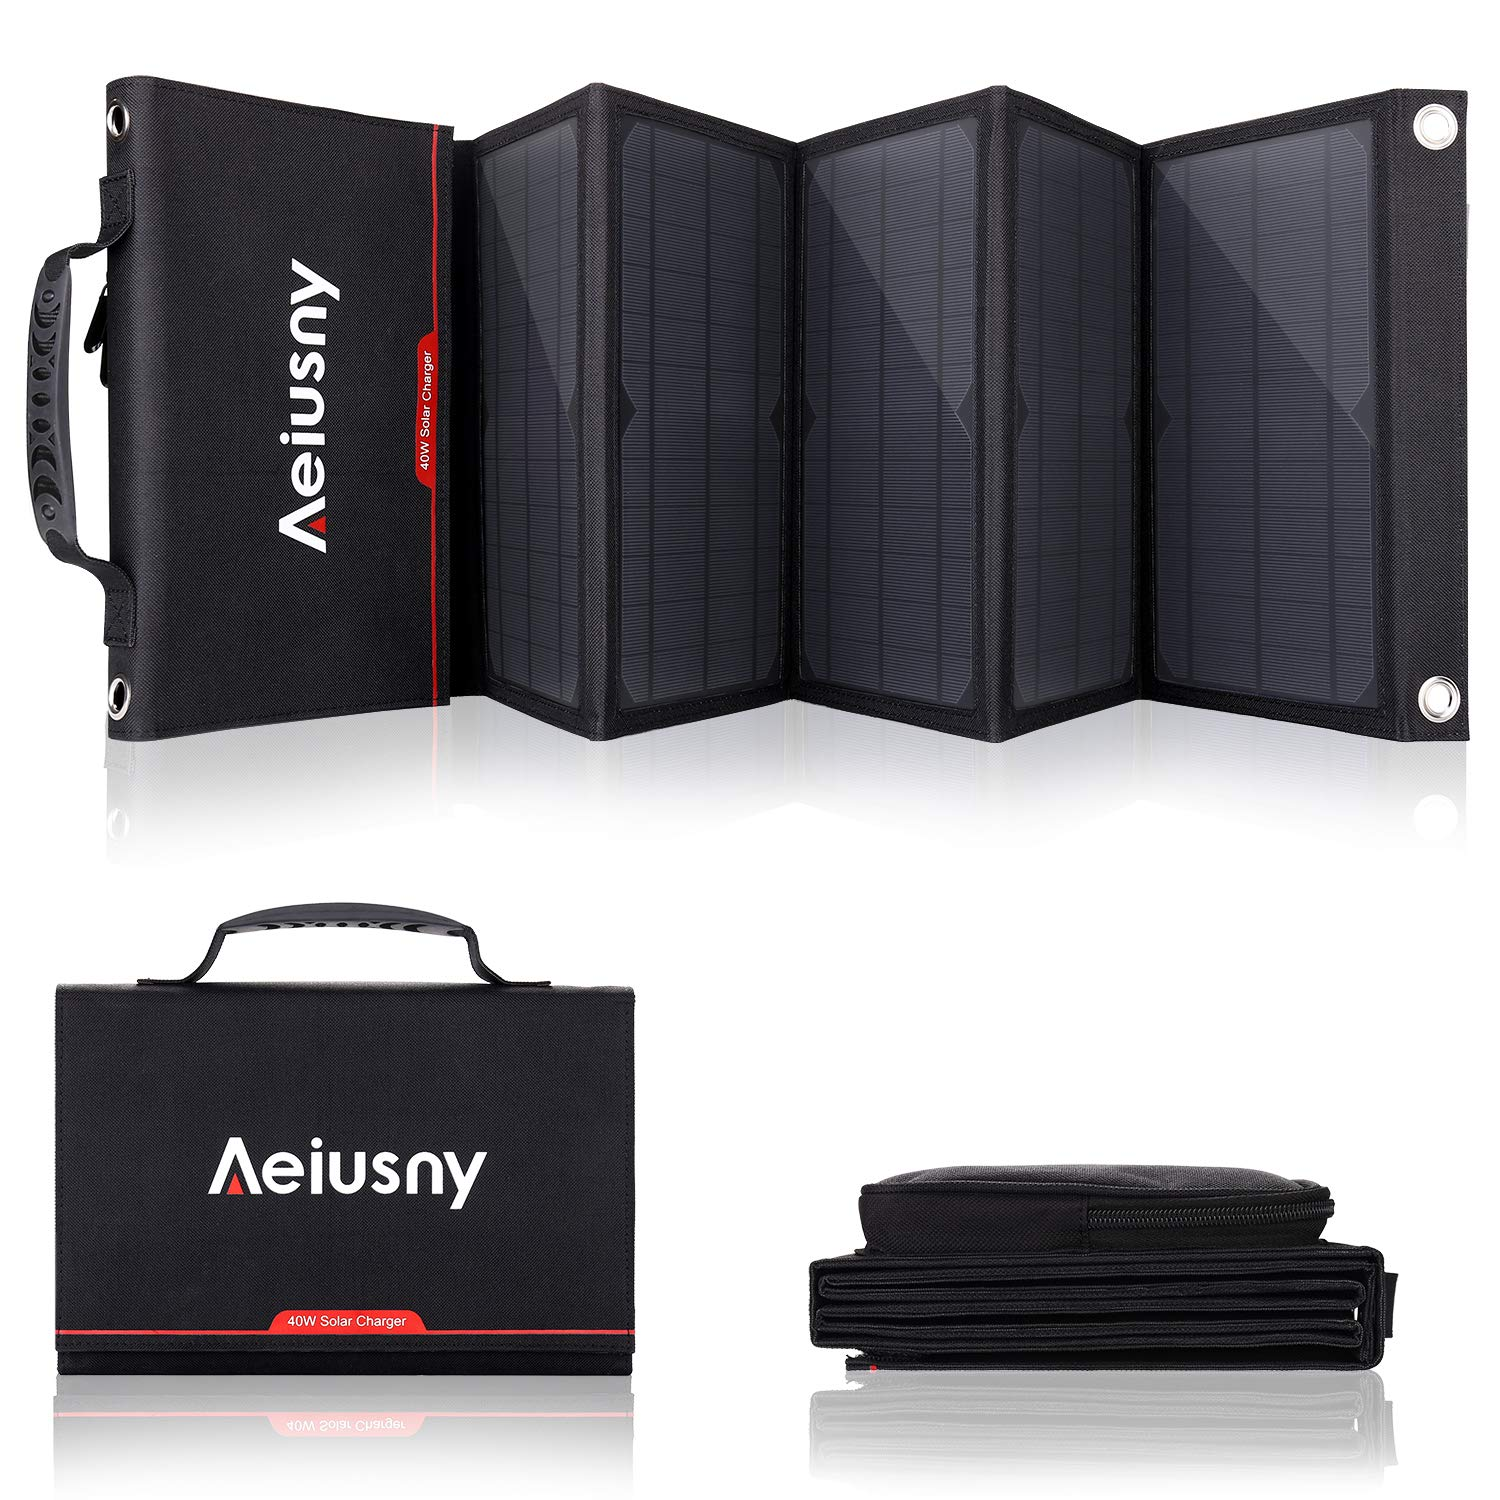 Aeiusny Foldable Solar Charger 40W Portable Solar Panel Charger with DC Output Waterproof for Jackery/Suaoki Portable Generator and USB QC 3.0 Charger for Laptop/iPhone 5-18V Device for Camping by Aeiusny